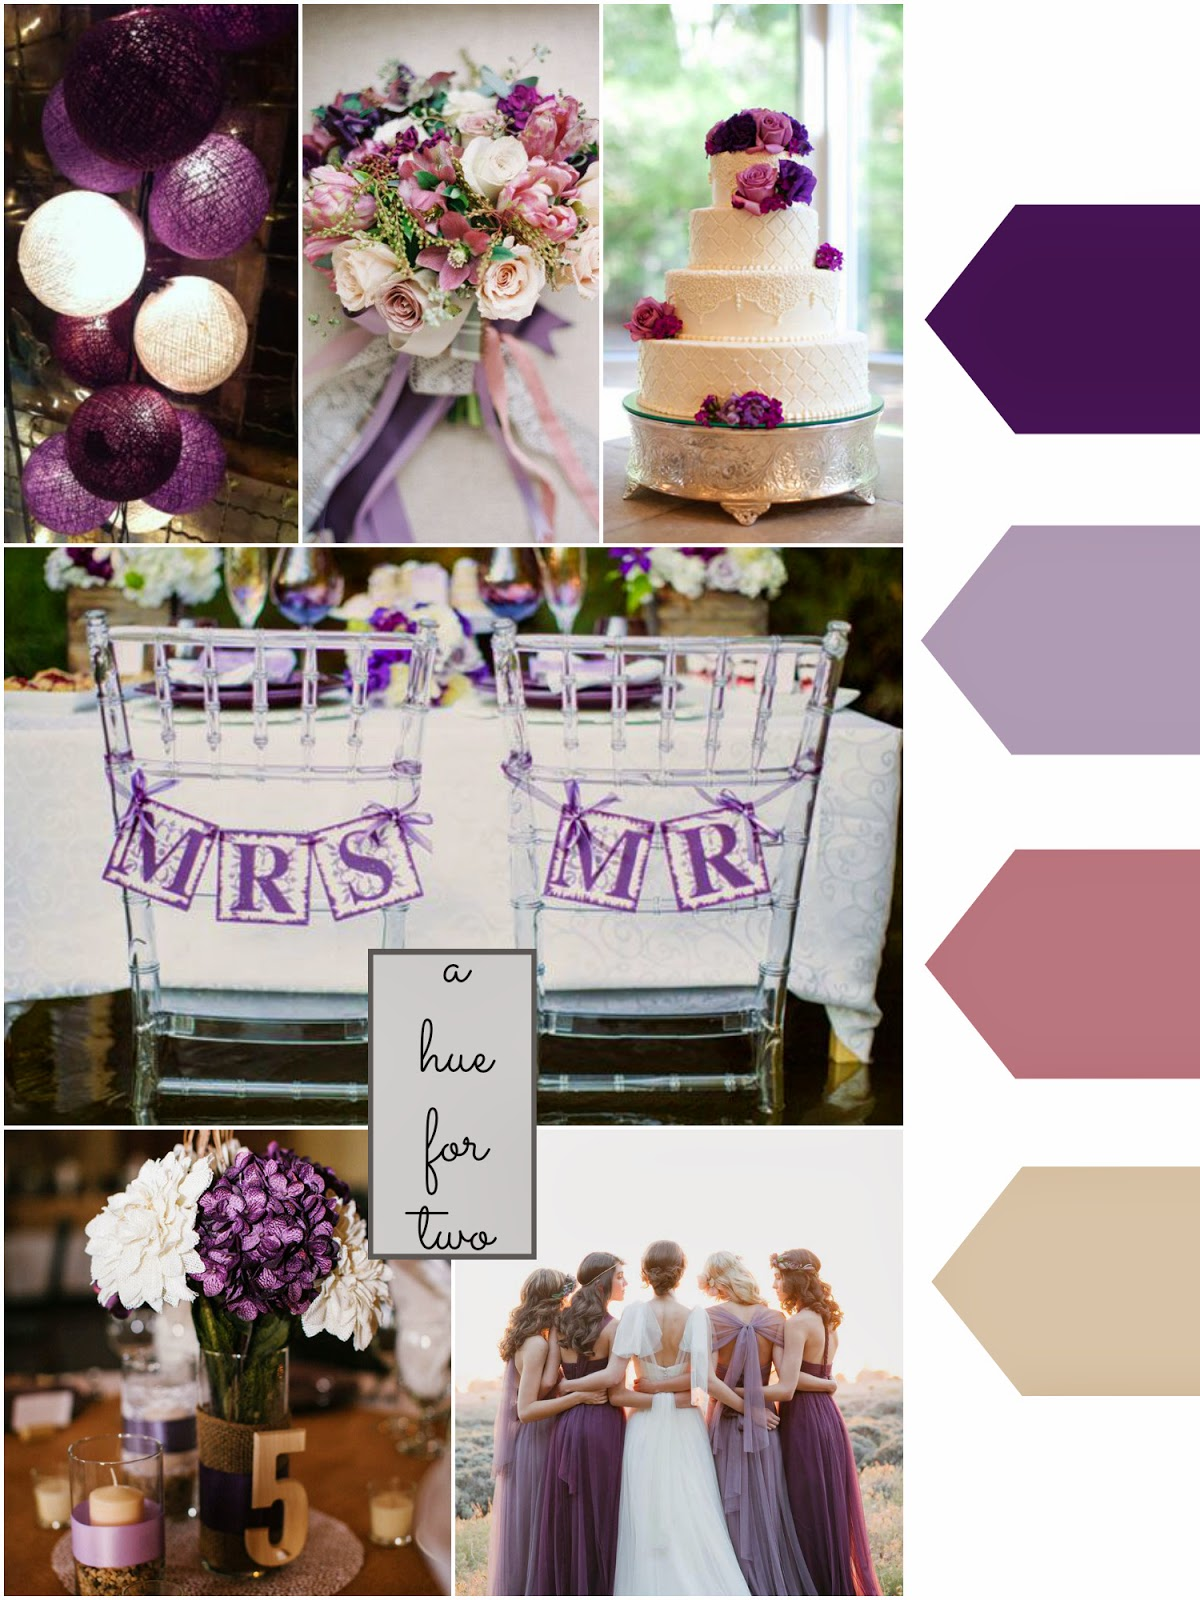 Because Beth Has Always Talked About Having A Smores Bar At Her Wedding I Went With Classic But Rustic Feel